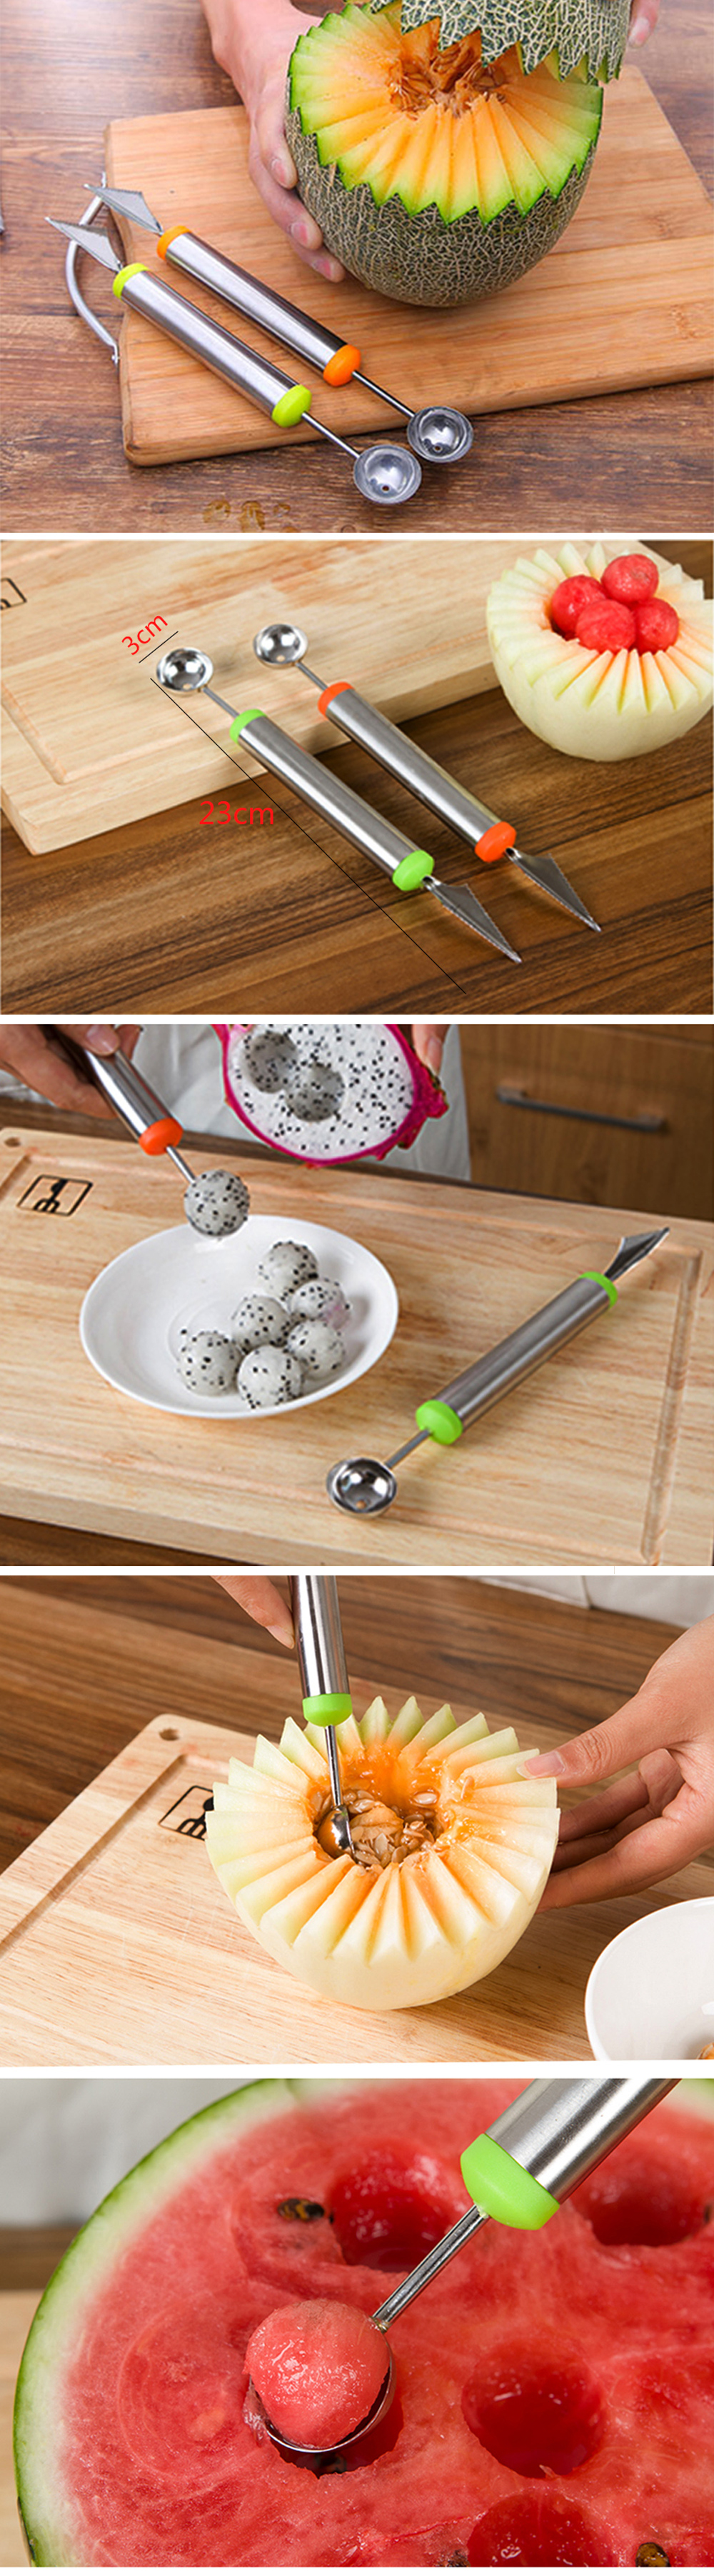 Stainless Steel Dual-Purpose Fruit Carving Knife